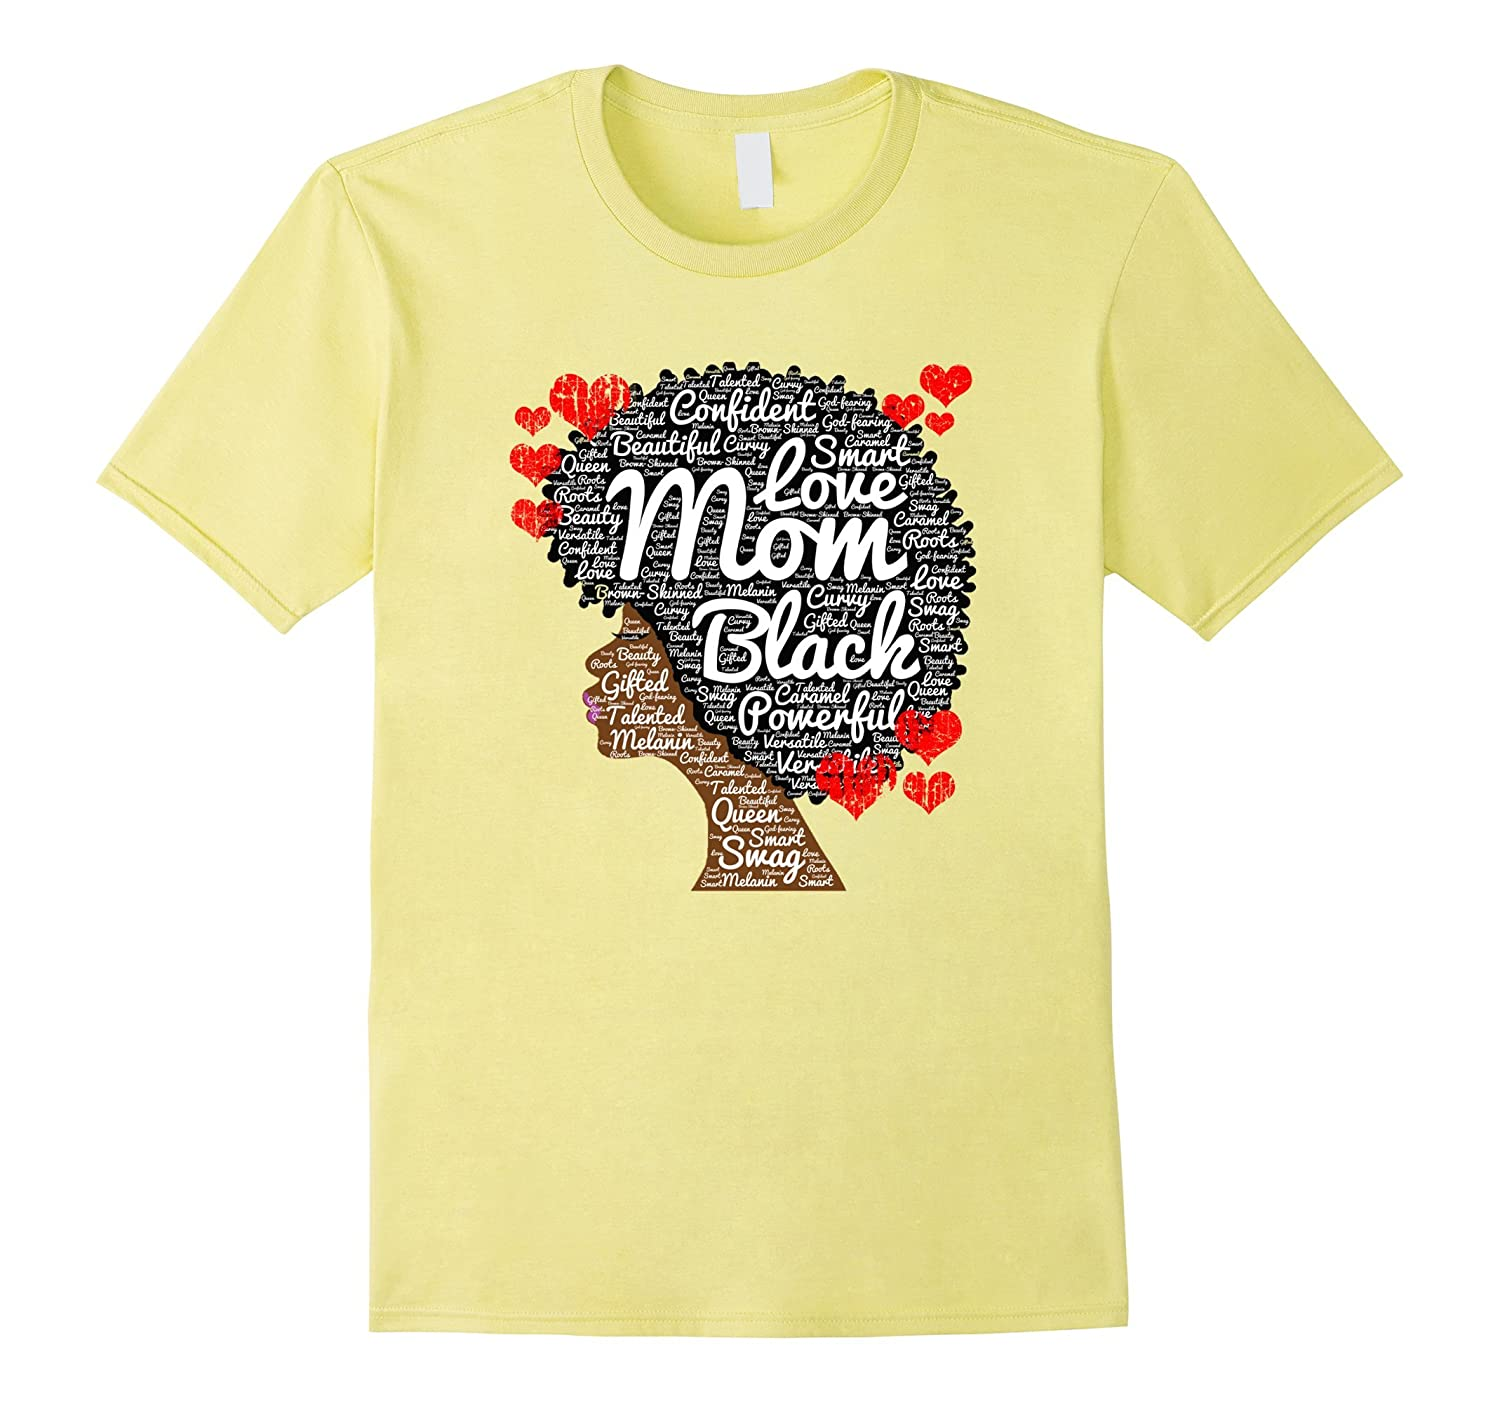 a3a0df40f Mothers Day Gift T-Shirt for Black or African American Moms-Vaci ...